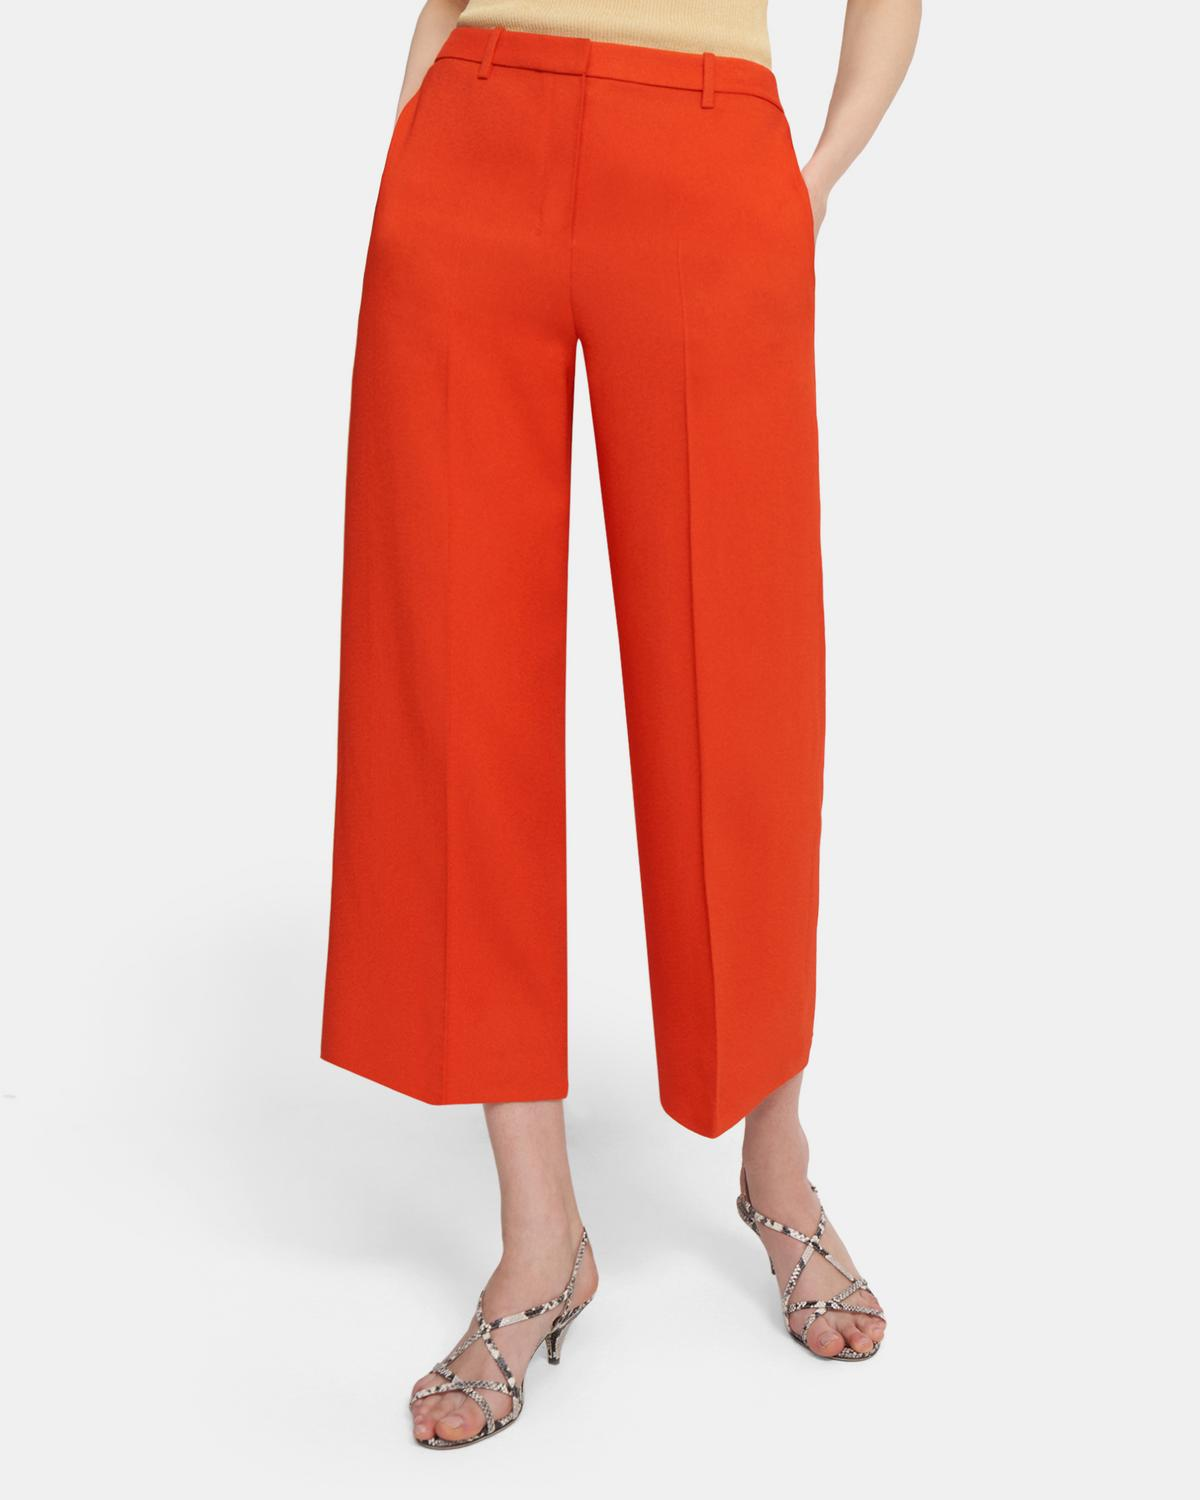 CROP WIDE PANT 0 - click to view larger image